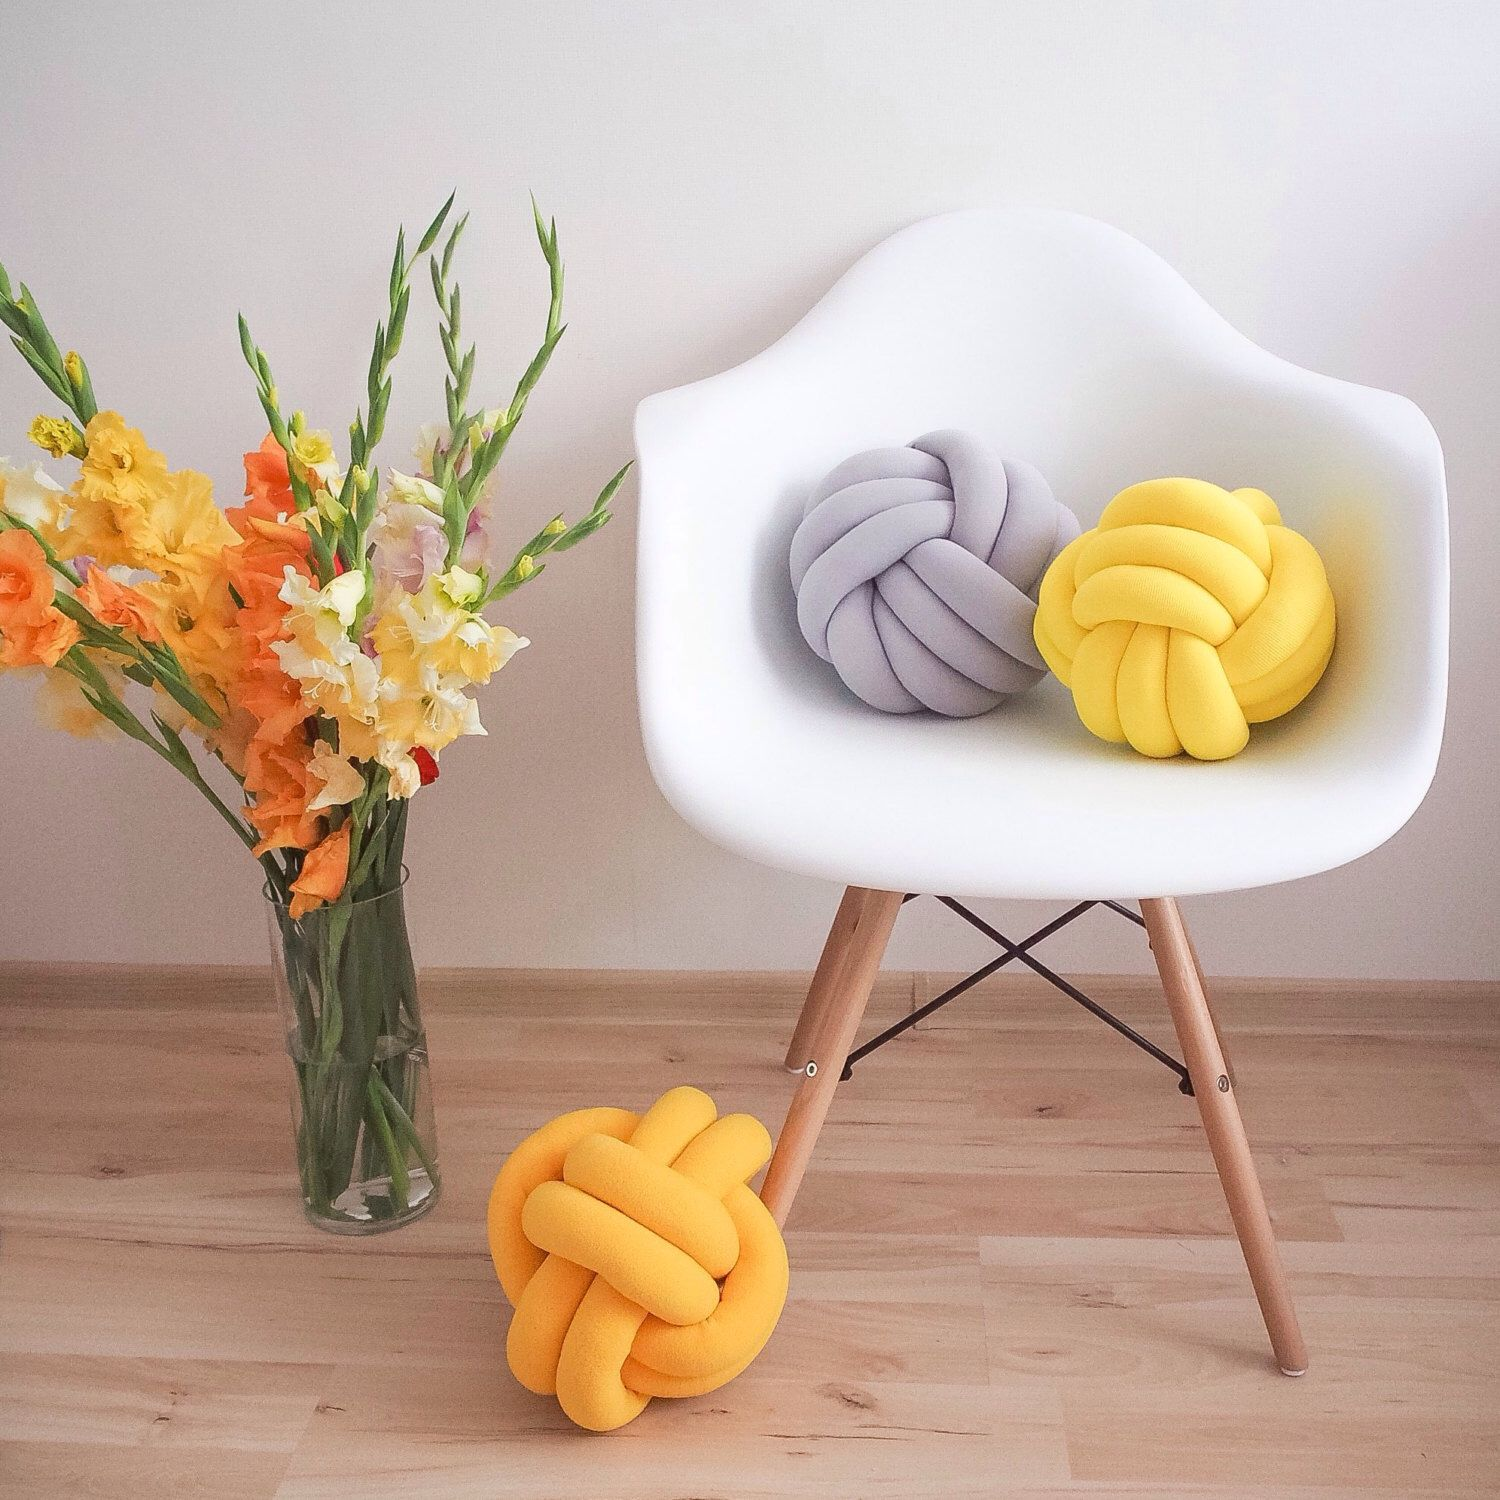 Pin by shatha on new work pinterest knot pillow pillows and knots